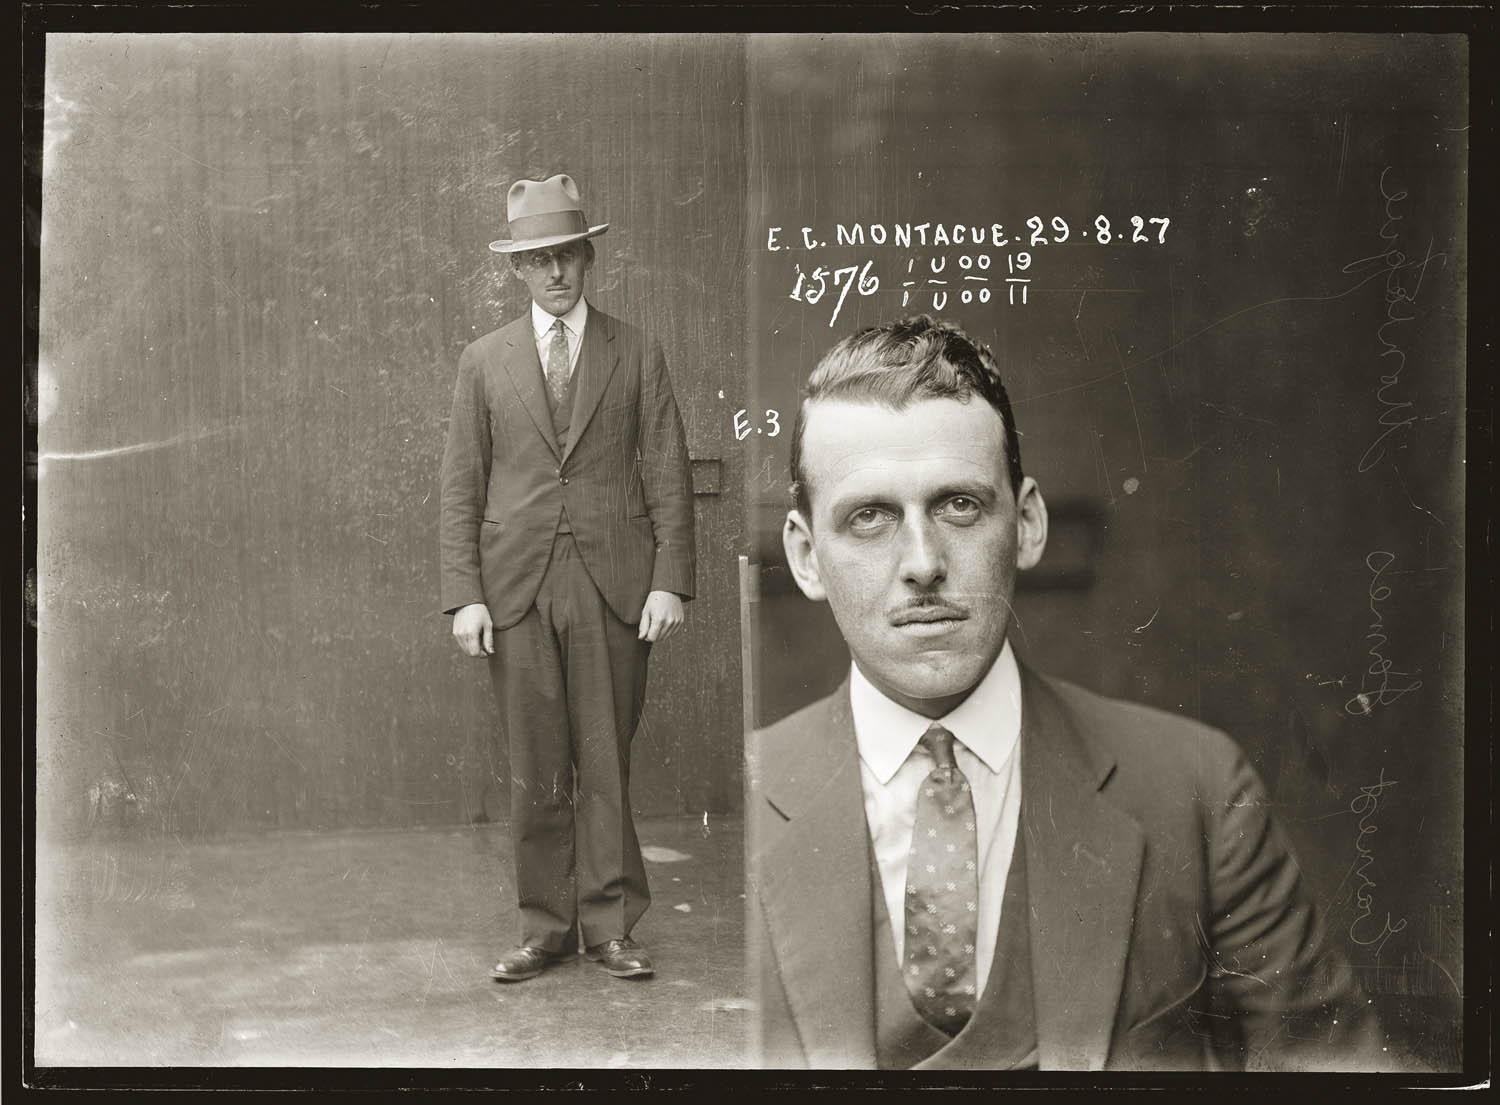 Mug shot of Ernest James Montague, 29 August 1927, Central Police Station, Sydney.